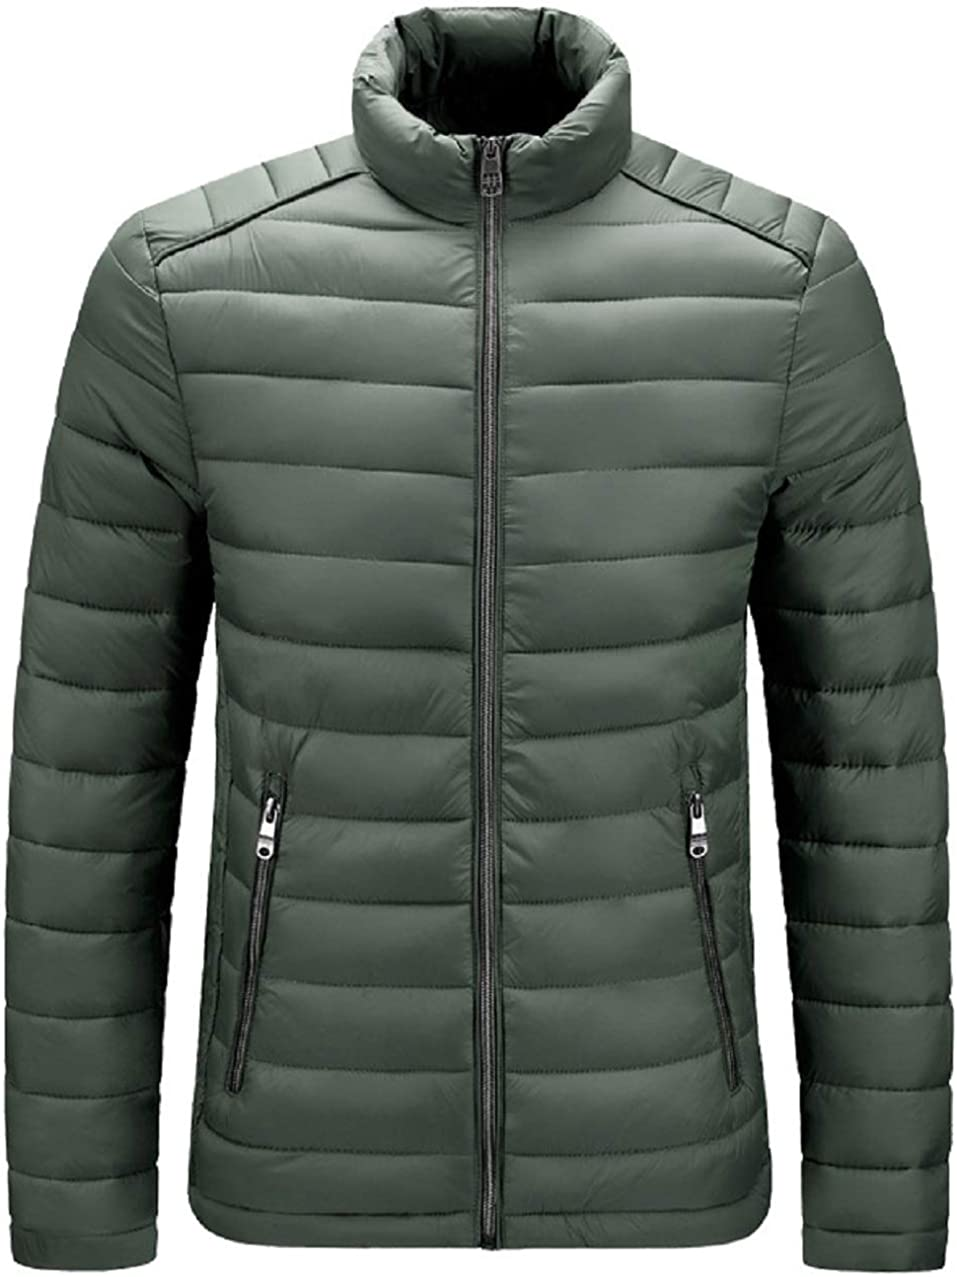 CHARTOU Men's Stand Collar Zip-Up Chevron Quilted Packable Puffer Jacket Outwear